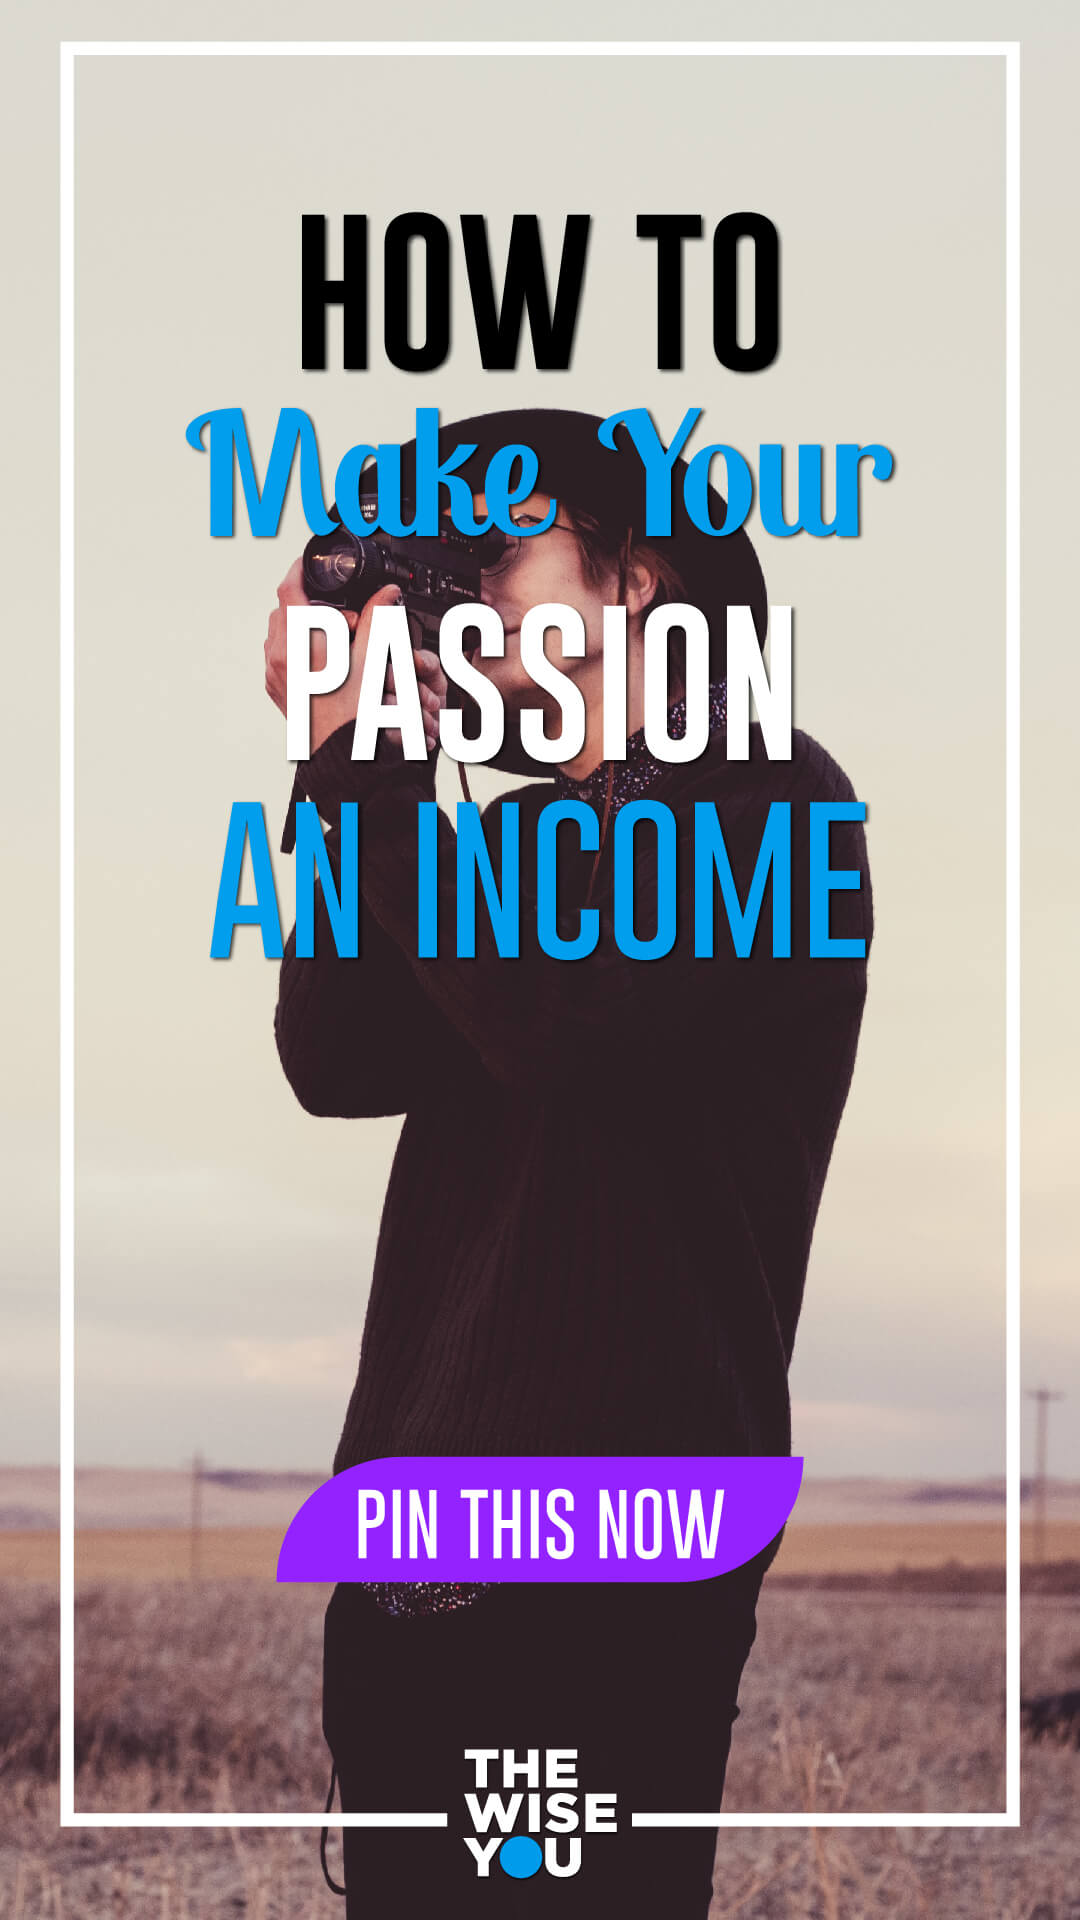 How To Make Your Passion An Income